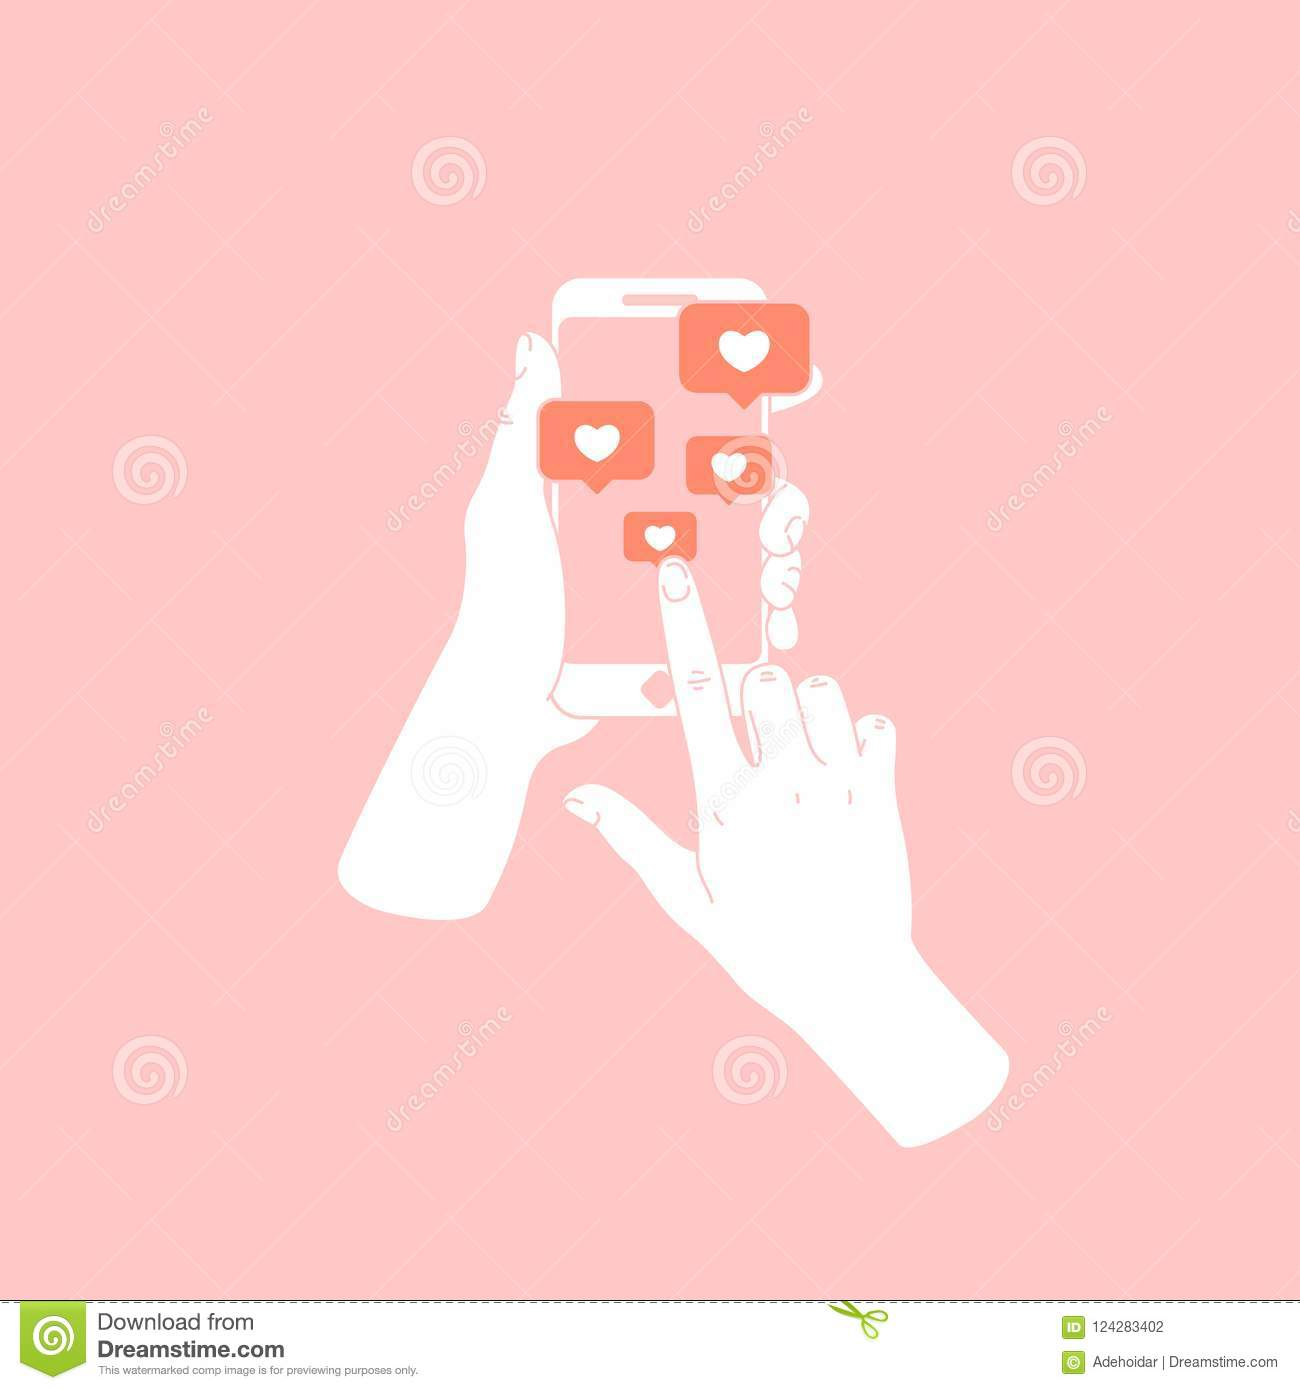 Woman hand holding smartphone. New messages and likes. Social media notifications. Vector illustration